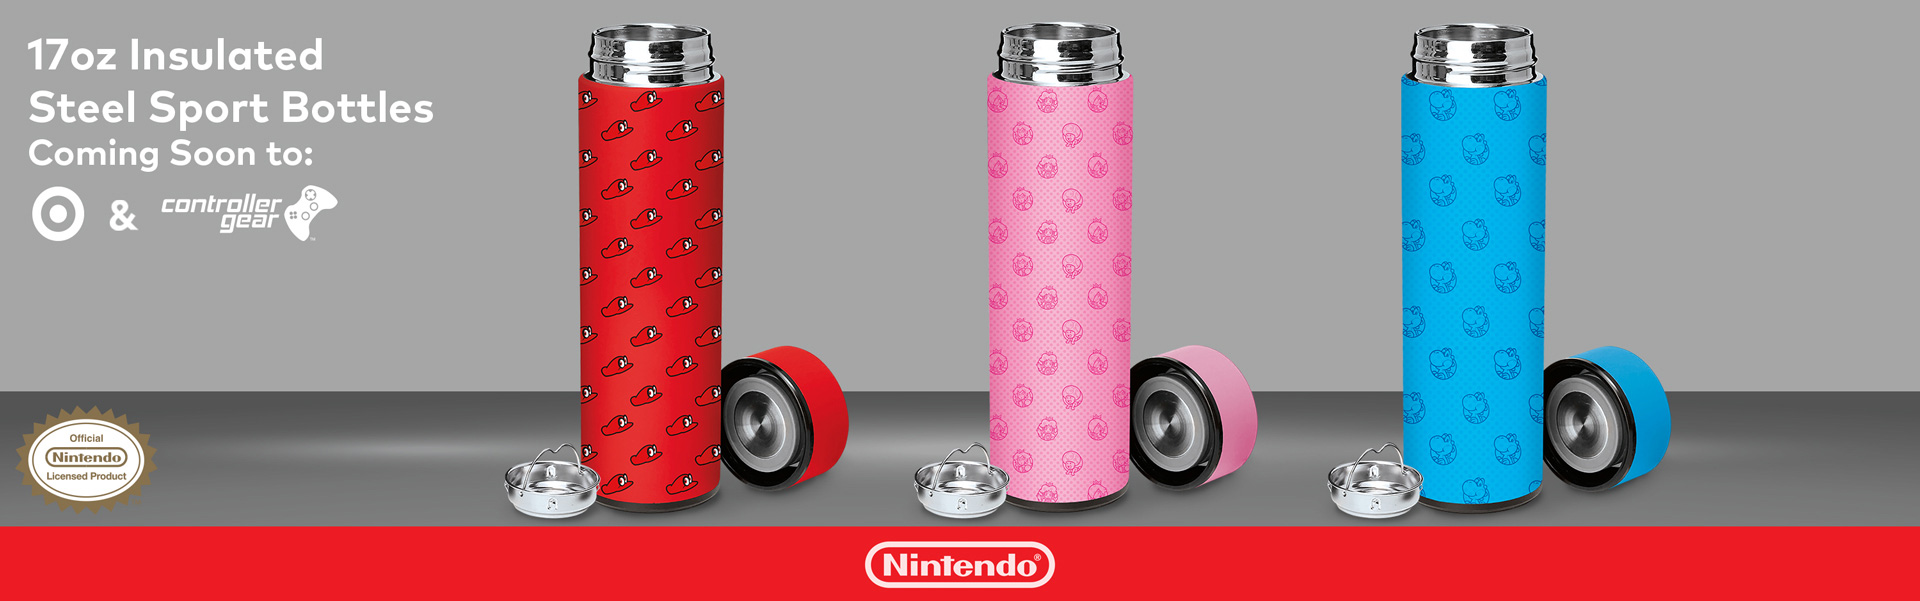 Insulated Steel Bottles by Controller Gear Licensed by Nintendo at Target